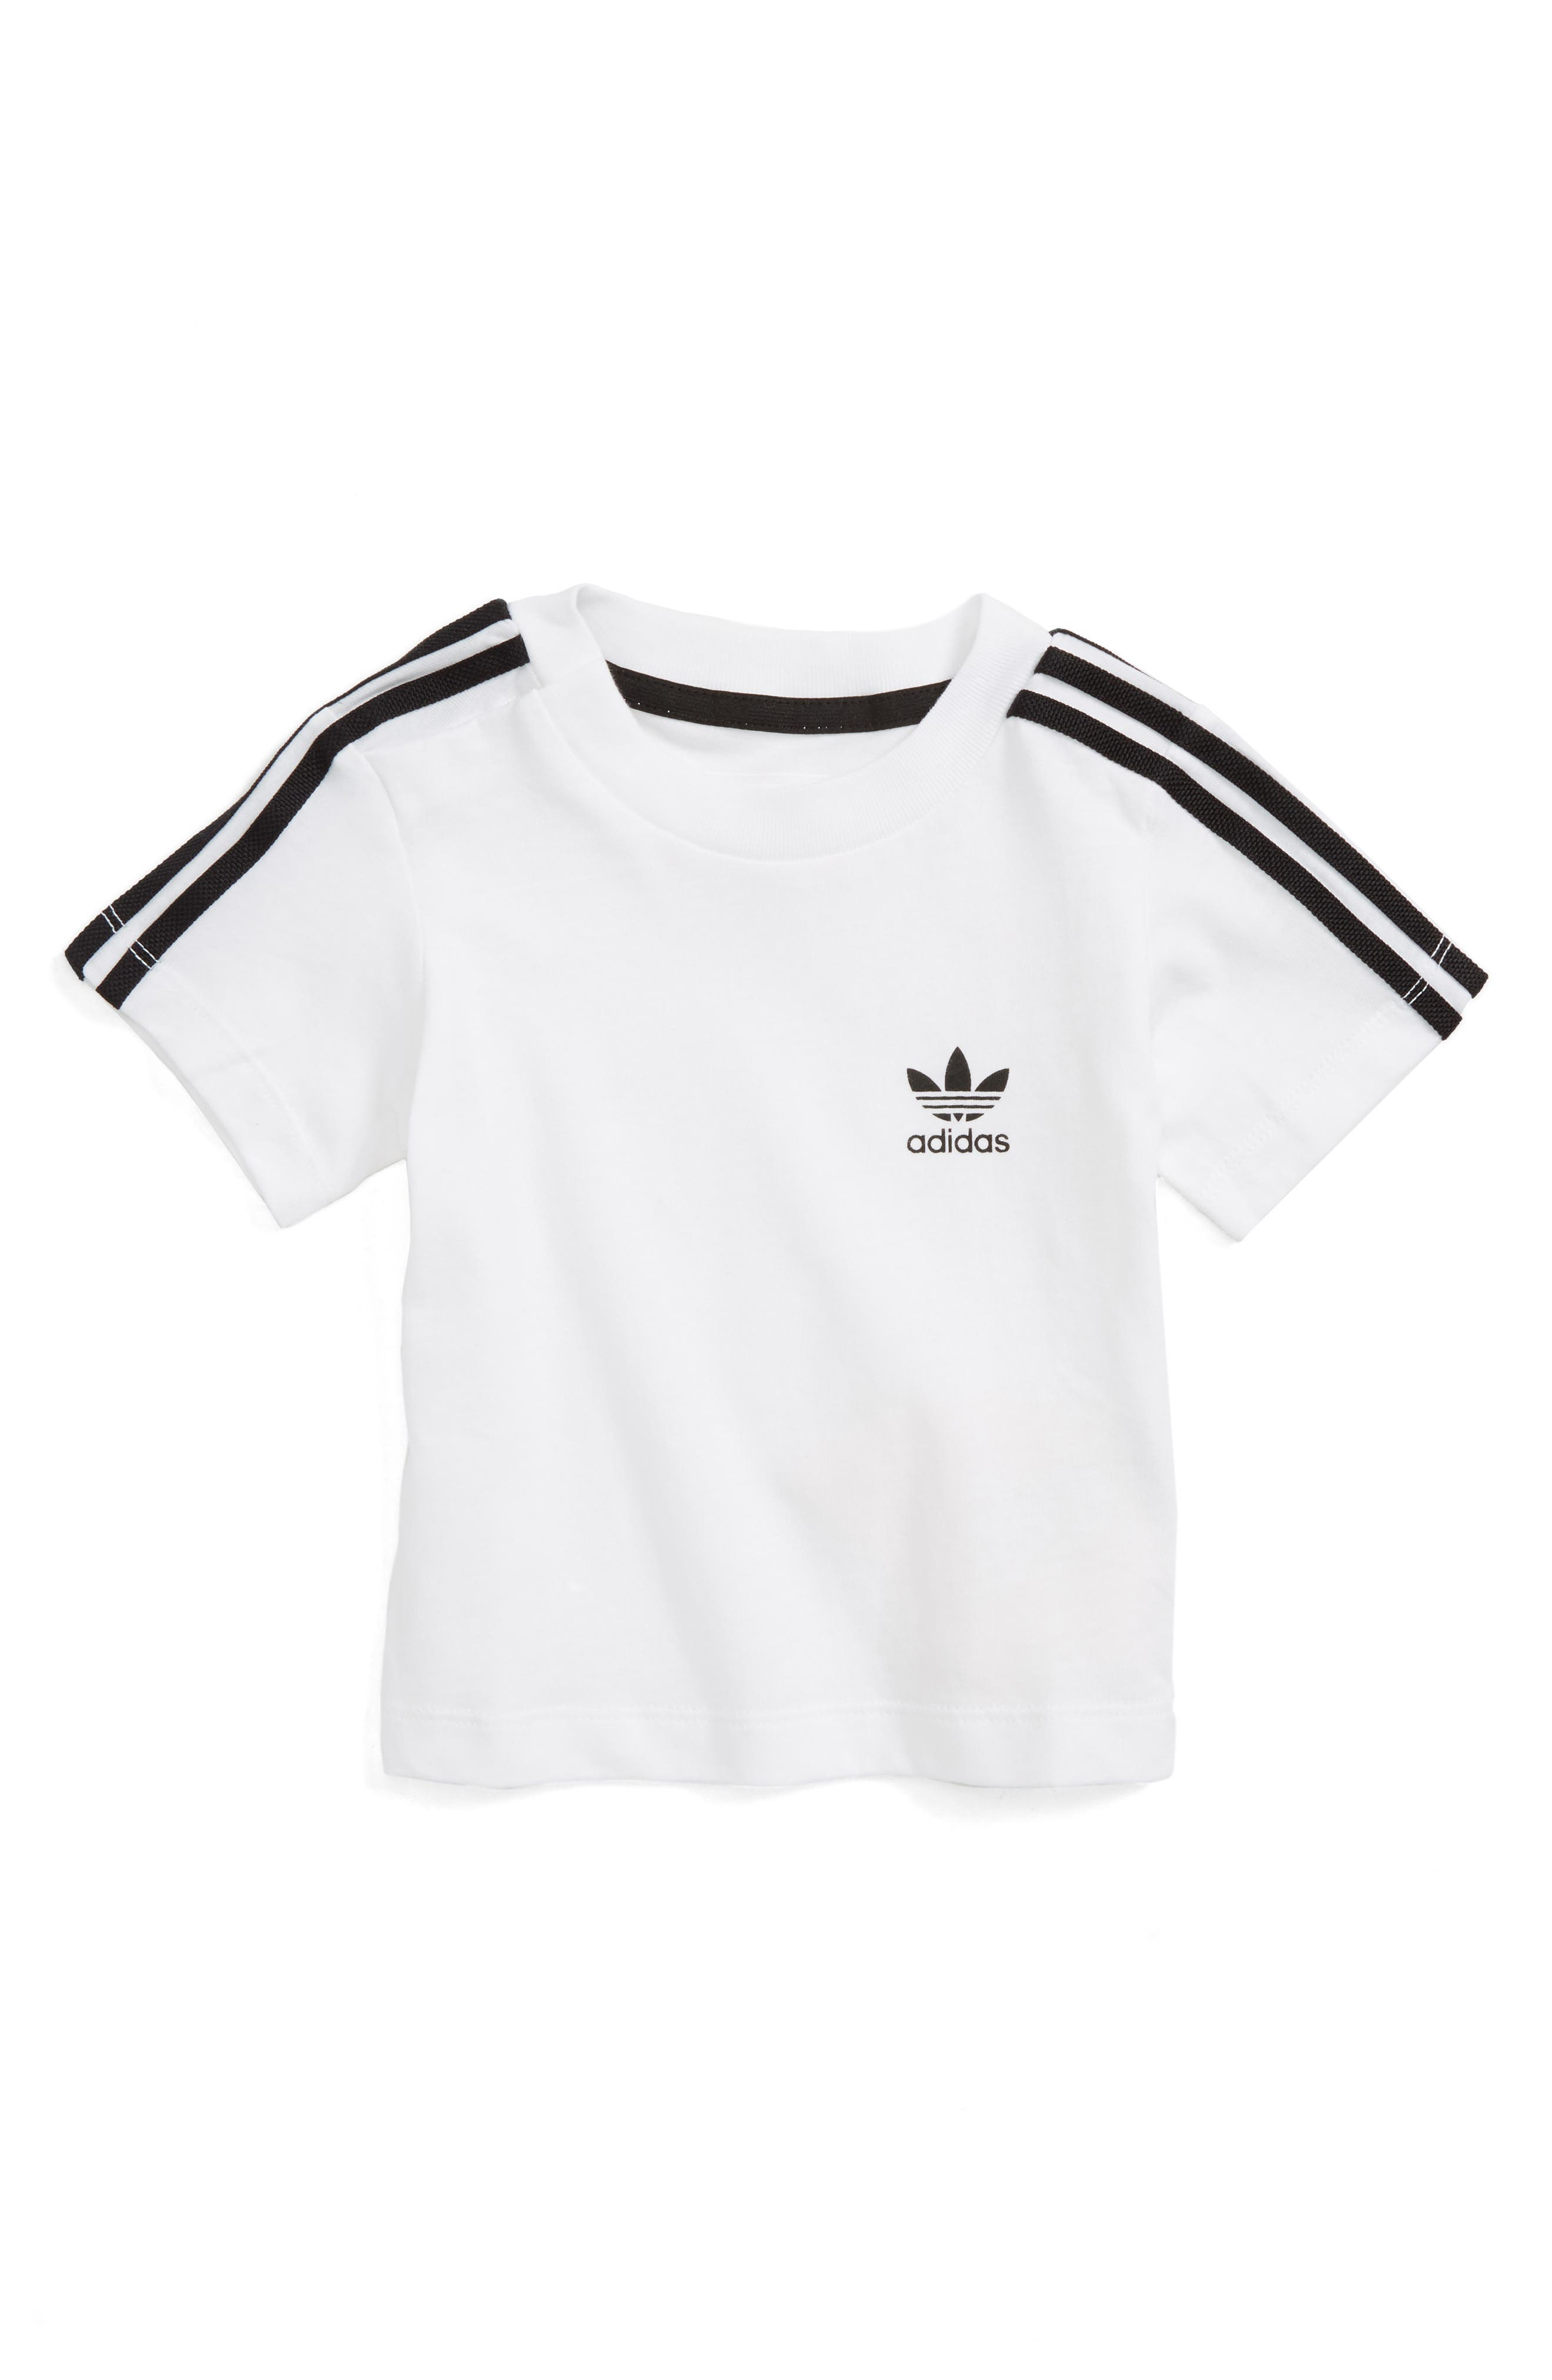 adidas Originals Stripe T-Shirt (Baby)